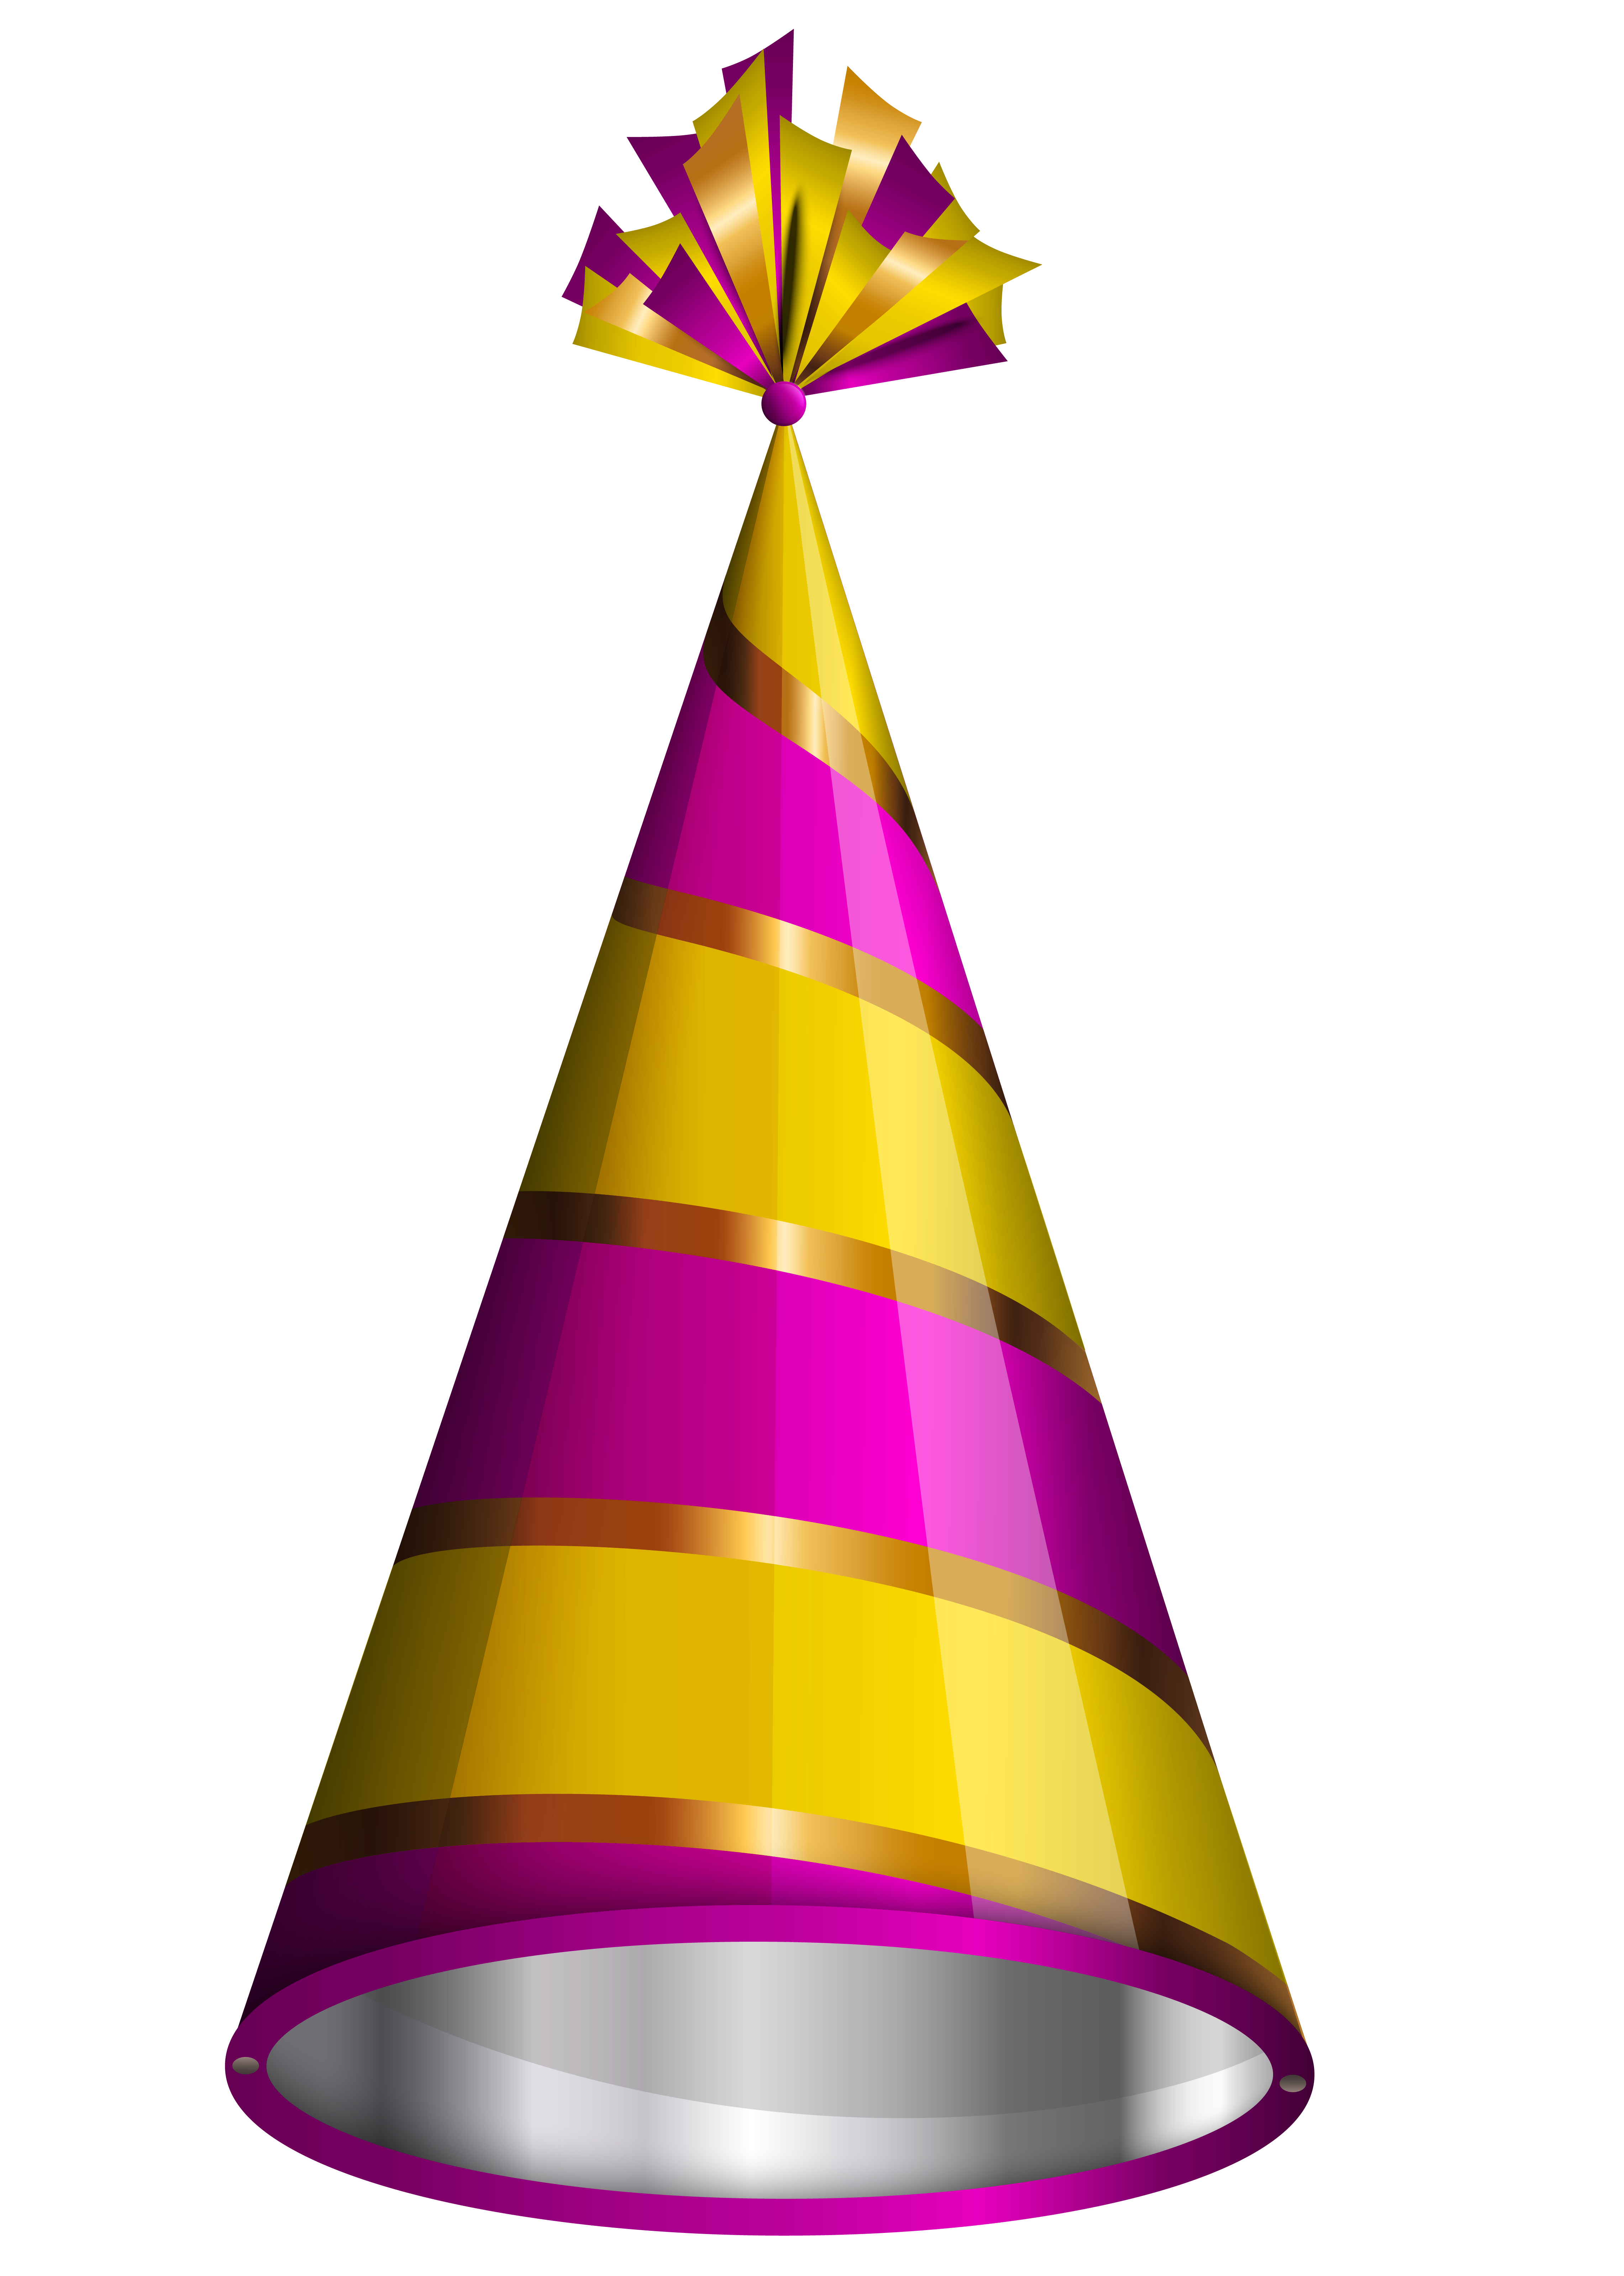 Party hats png. Birthday hat clipart image